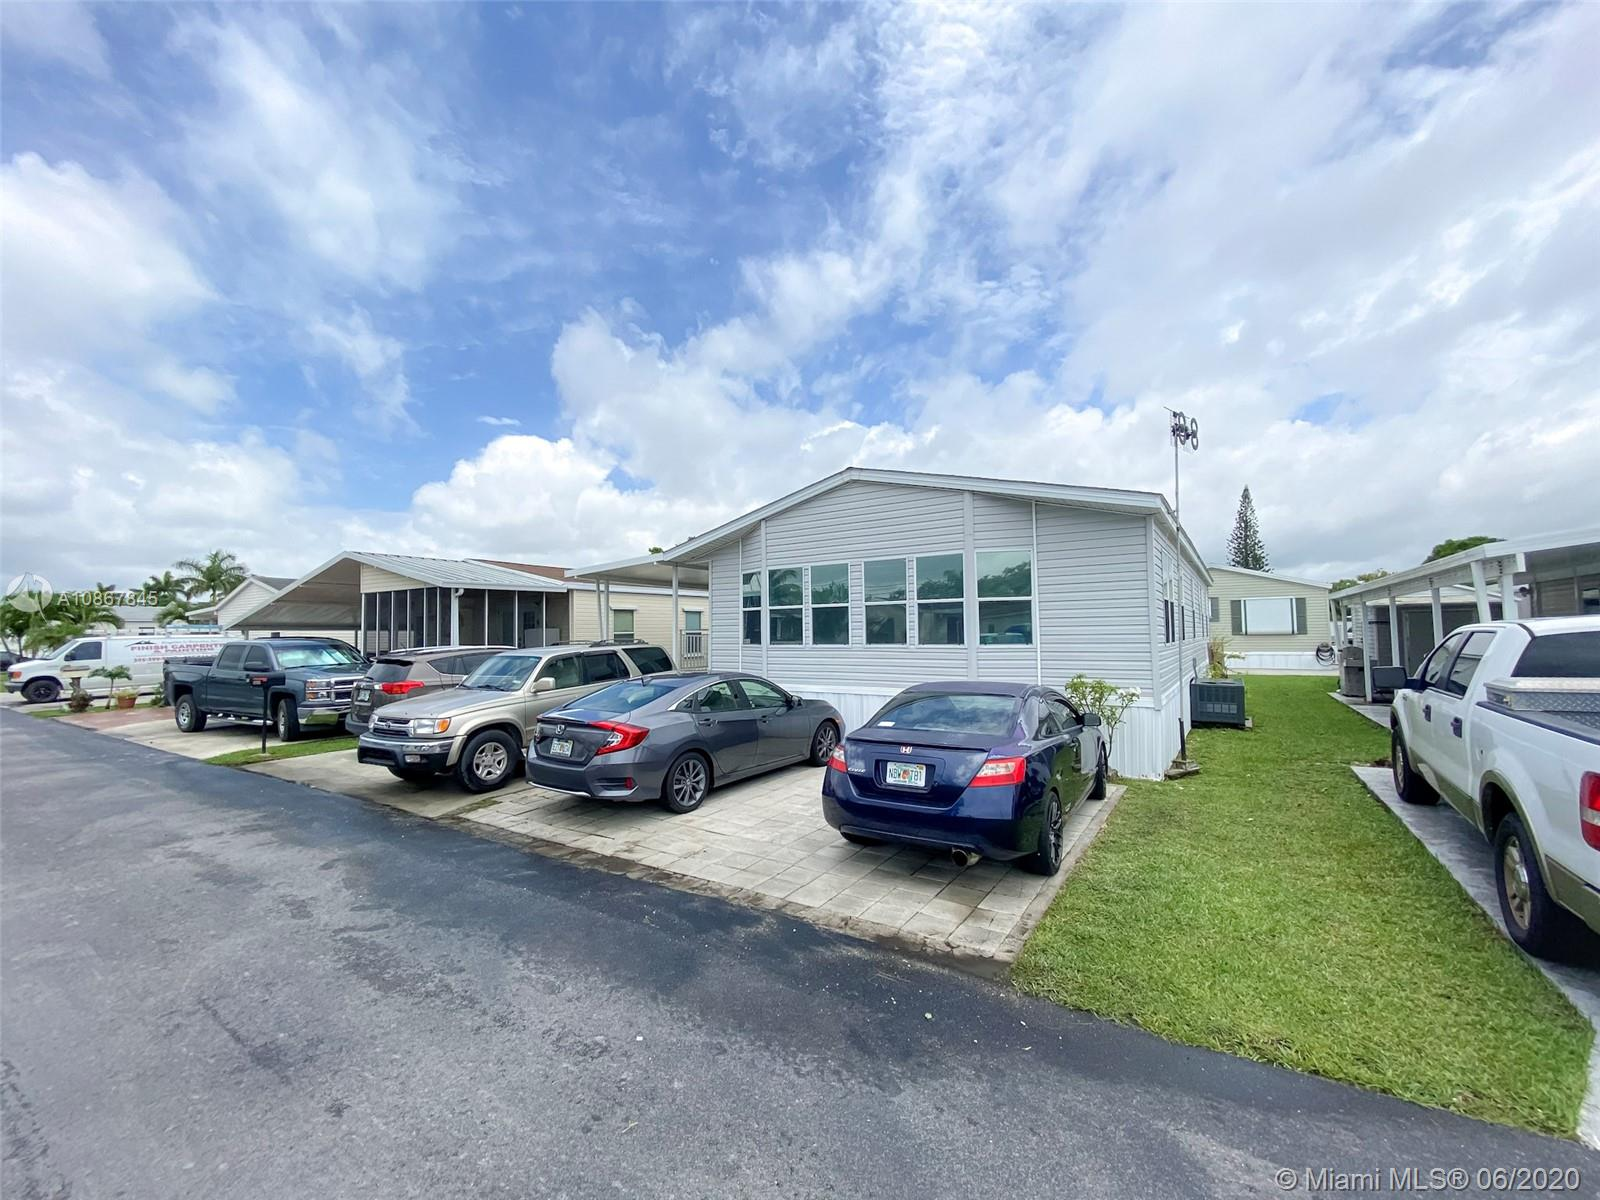 34574 SW 187 CT, Homestead, FL 33034 - Homestead, FL real estate listing